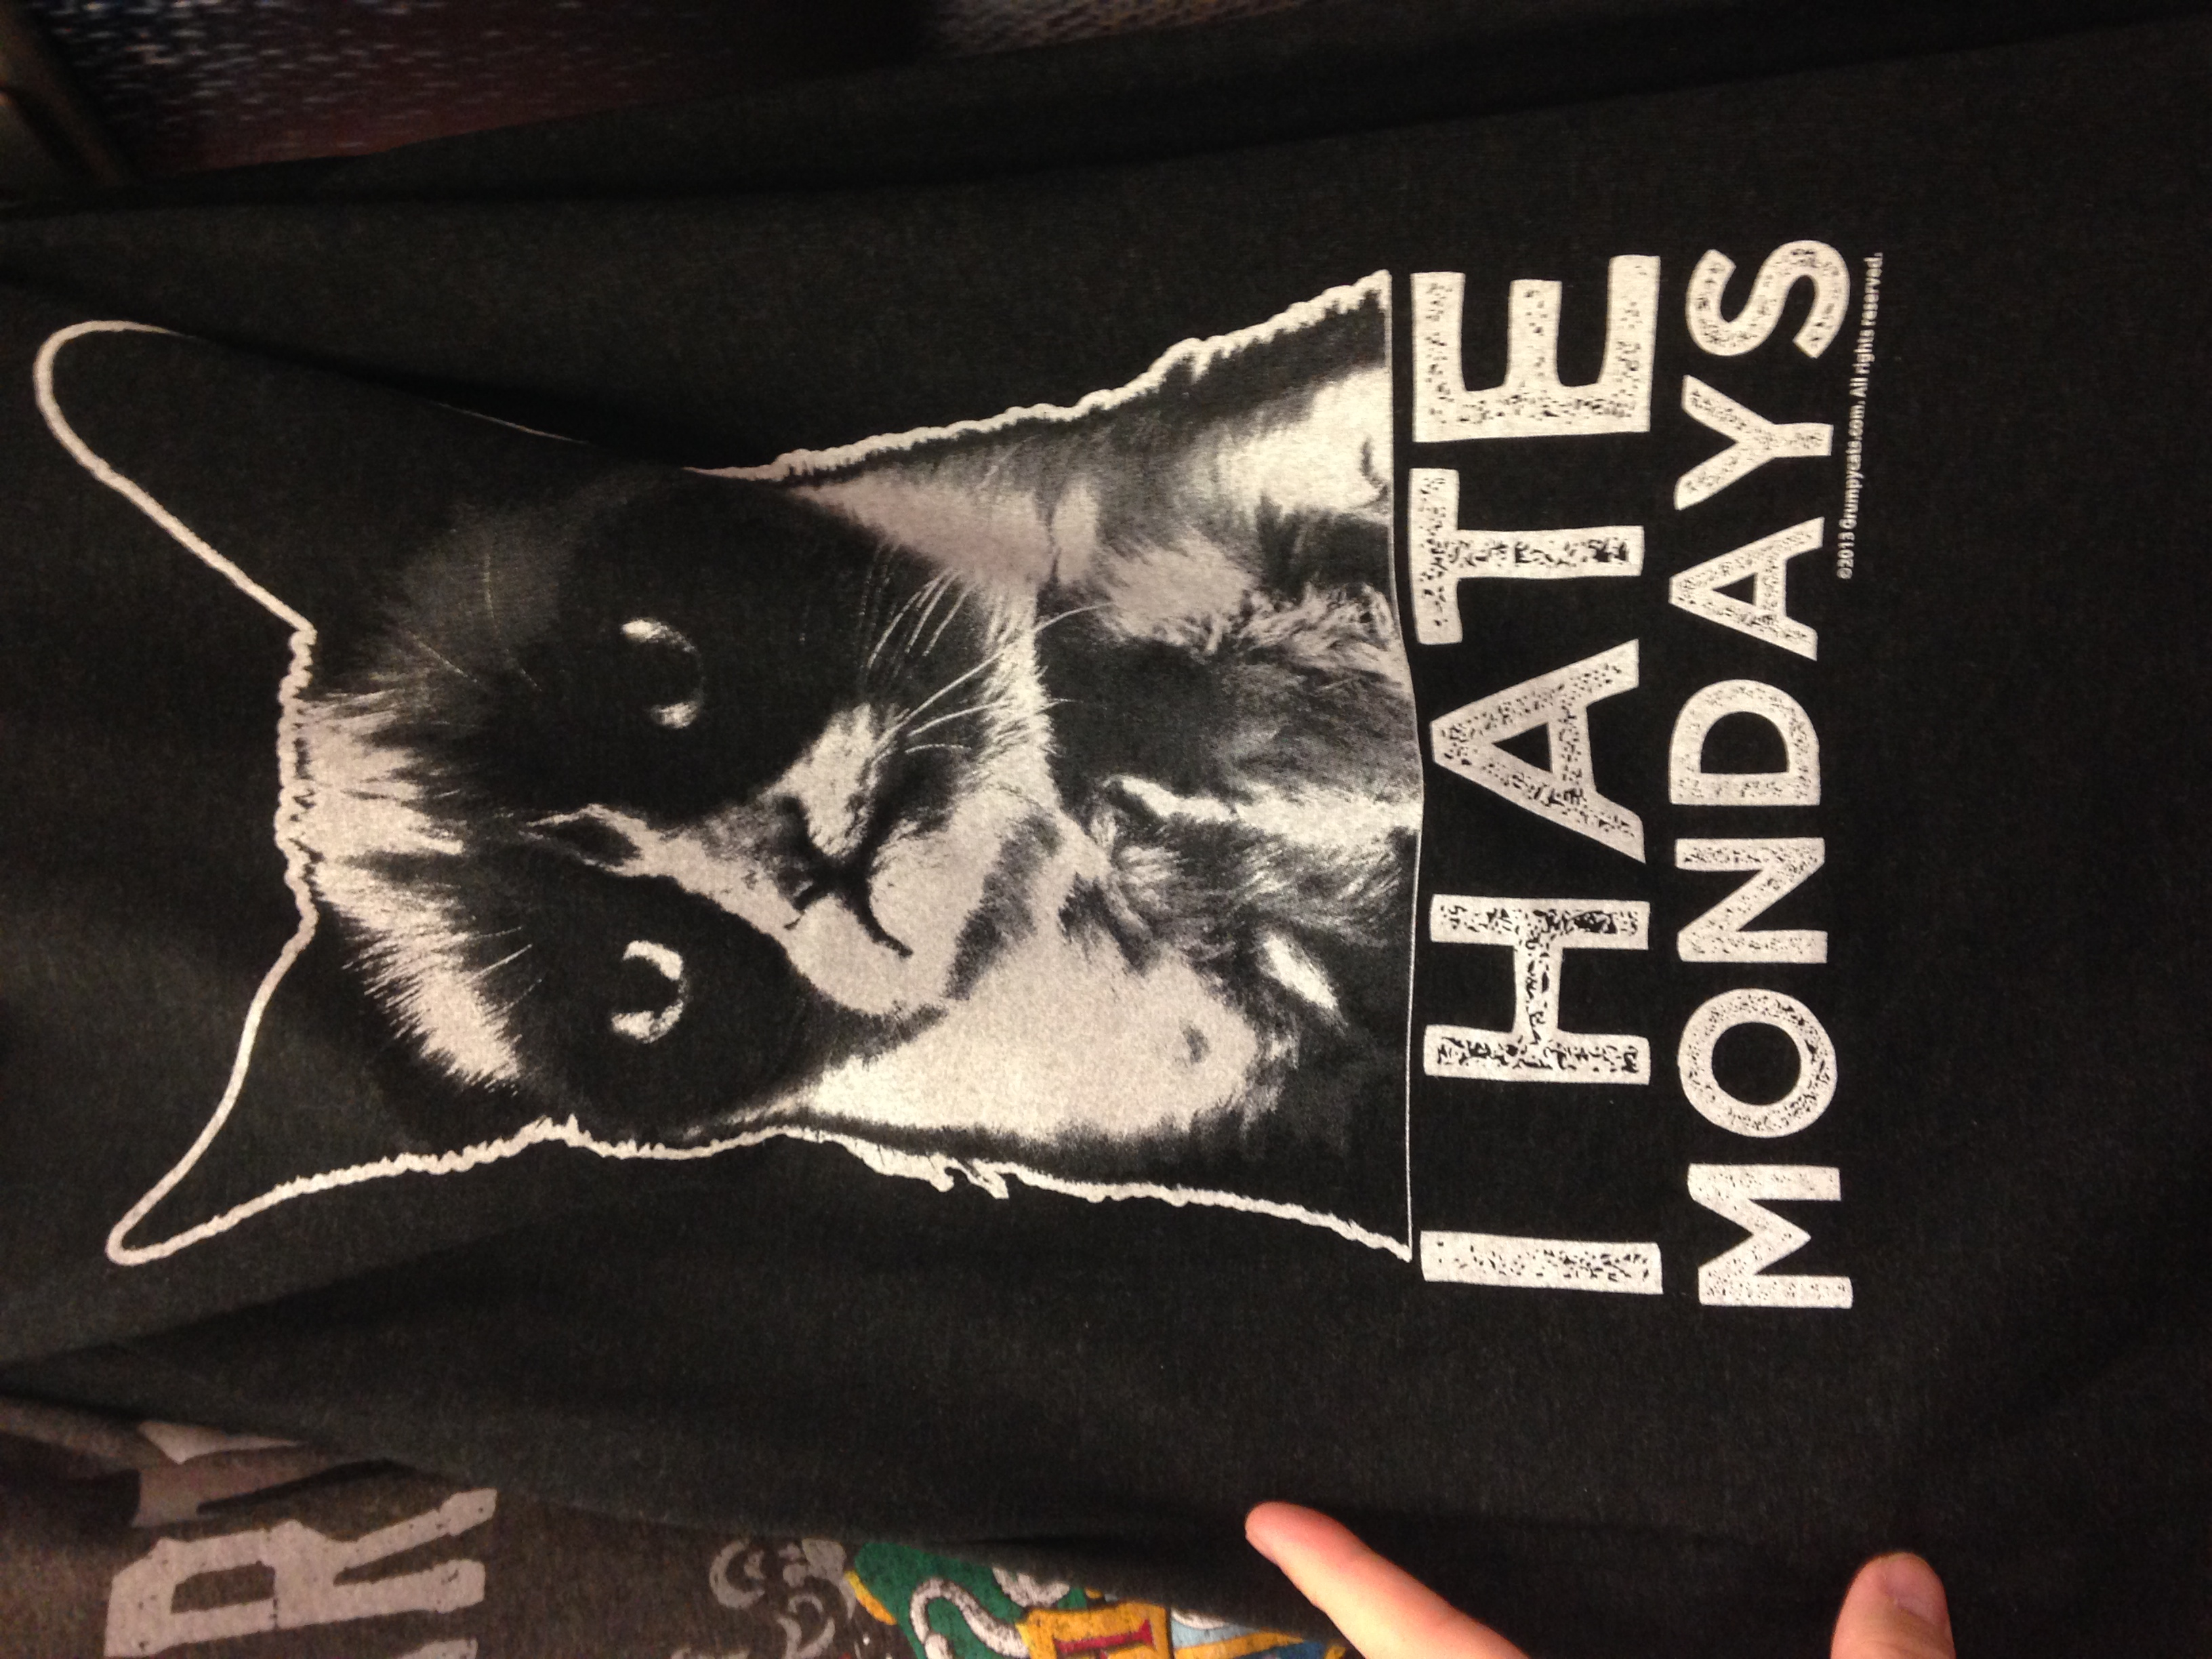 While working in the mens department I saw this Grumpy Cat short. I do agree with him.